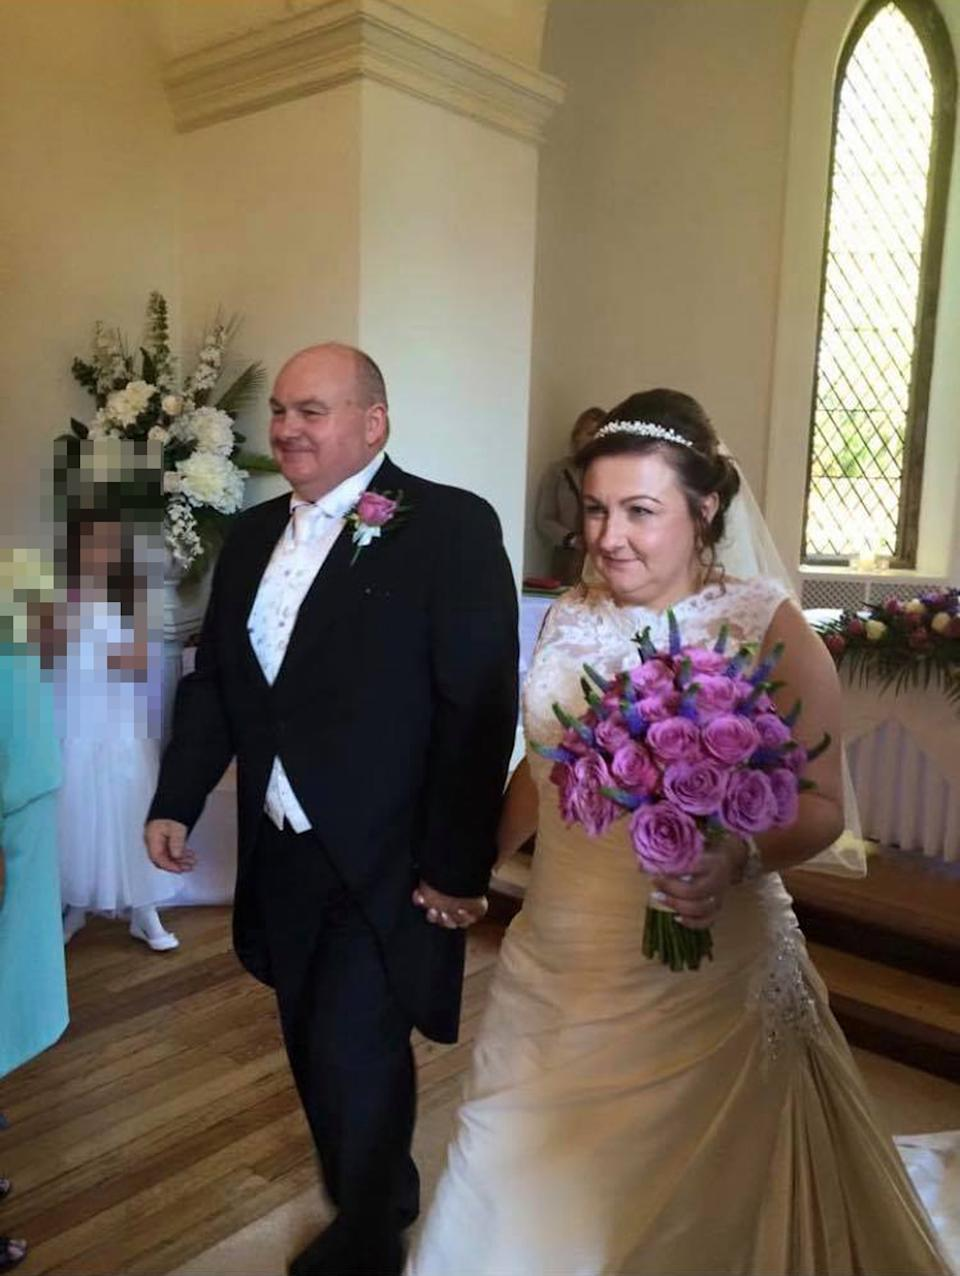 Couple with an age gap getting married